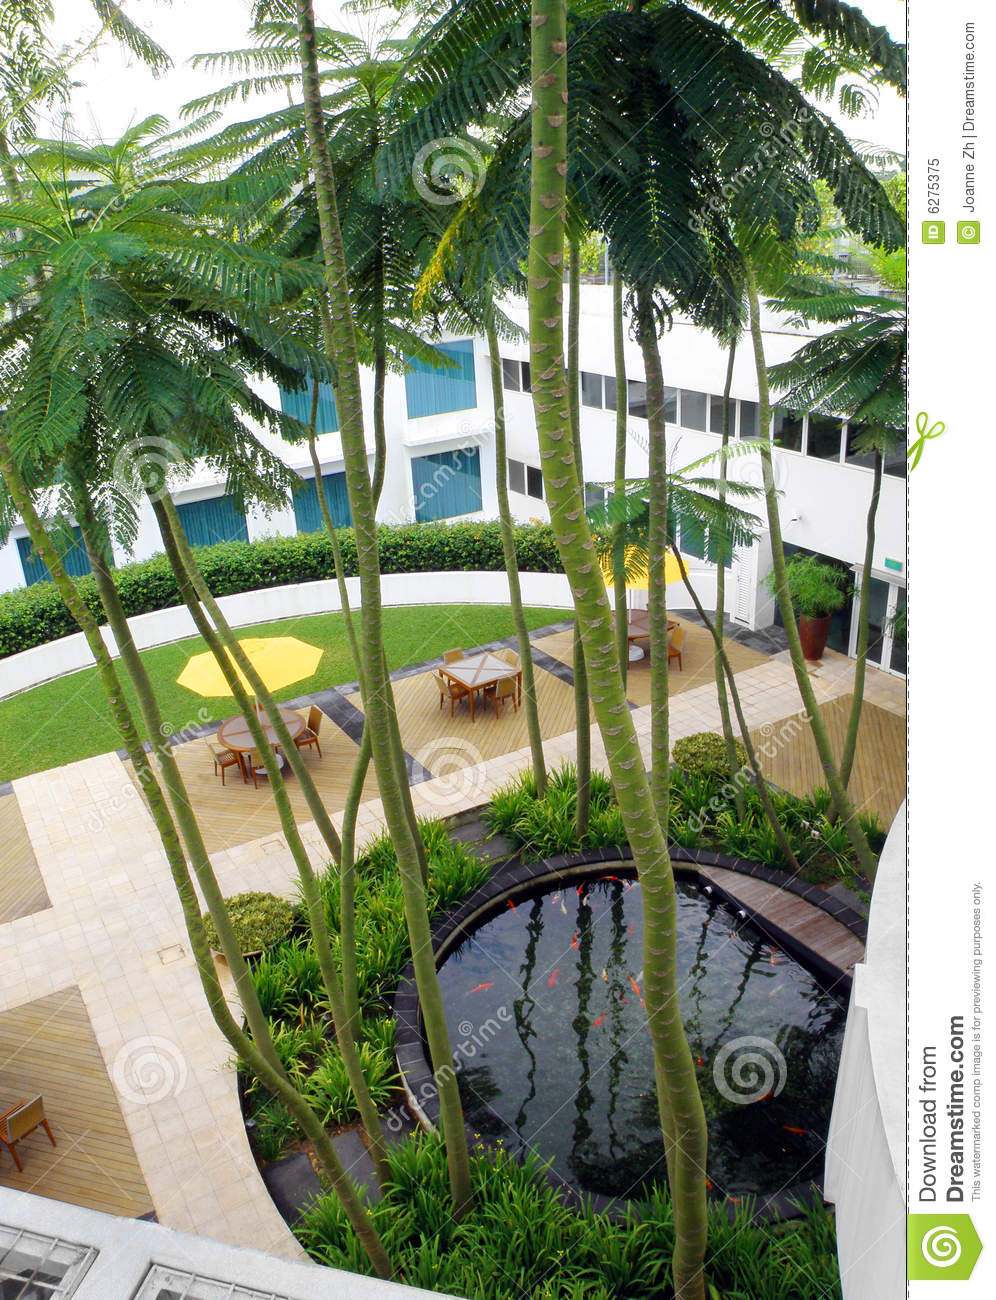 Roof top garden design stock image image of horticulture for Best garden design